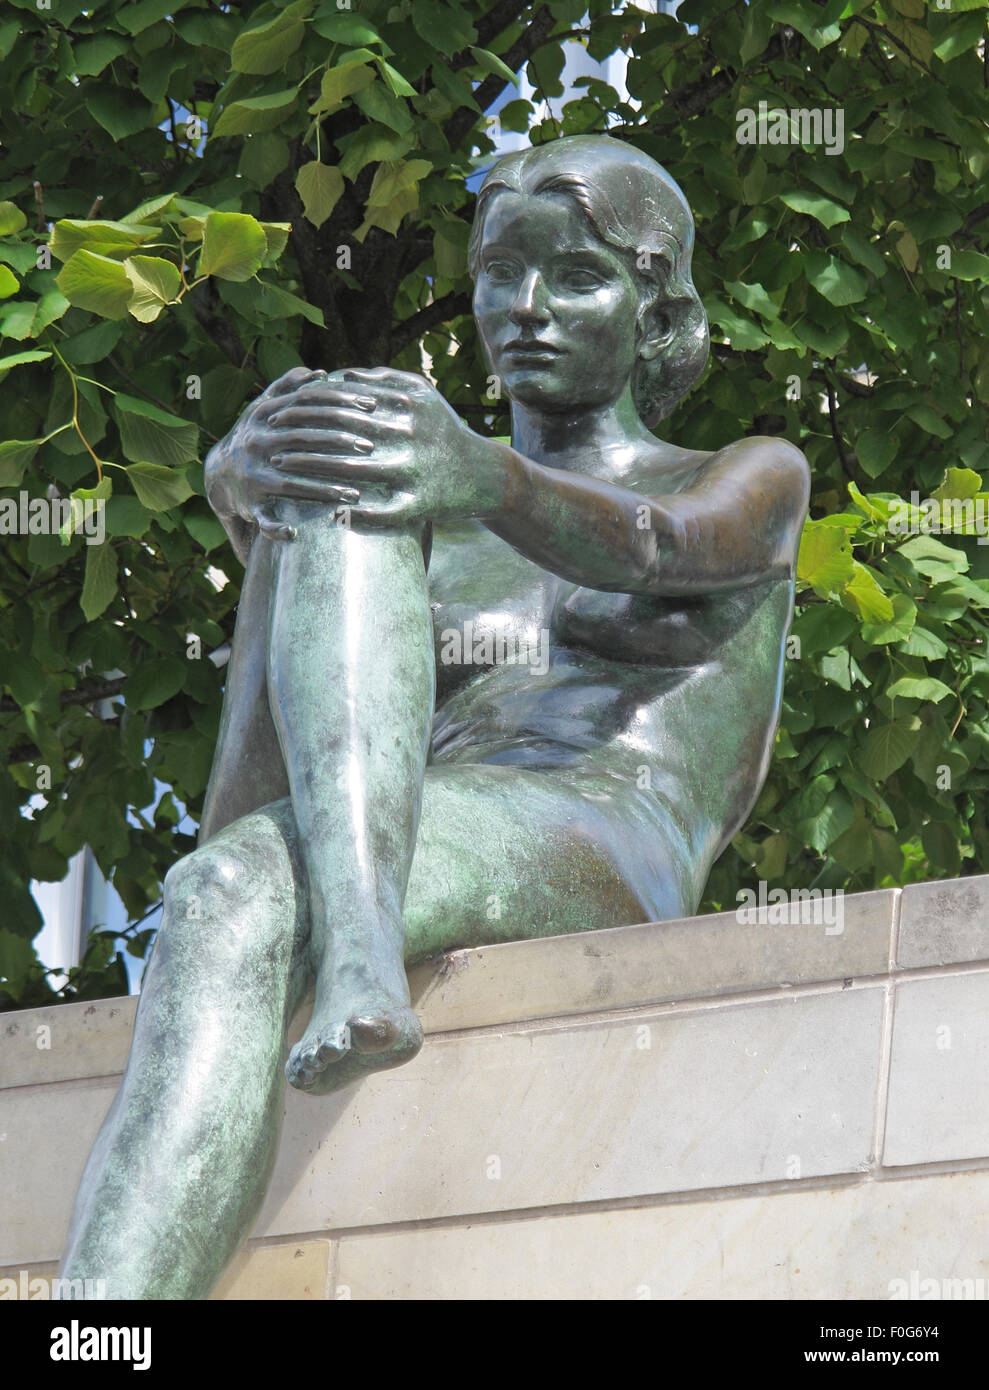 3,Statue,by,the,Spree,River,Moabit,Berlin,Germany,bronze,bank,side,of,art,artist,public,publicart,German,sculptor,DomAquarée,DomAquaree,summer,sunny,bright,city,cities,culture,side,view,recline,reclining,GoTonySmith,Buy Pictures of,Buy Images Of